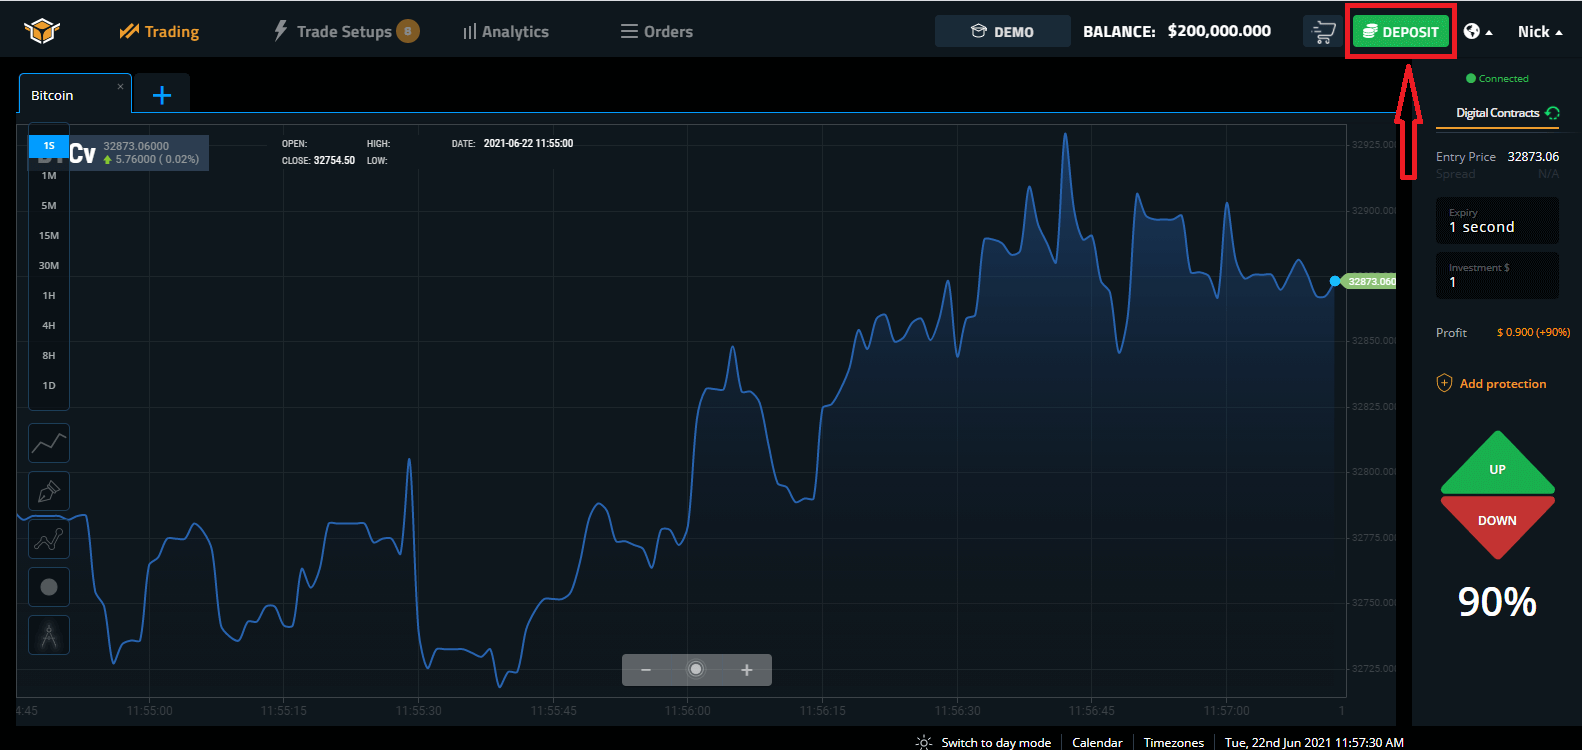 How to Trade at Spectre.ai for Beginners